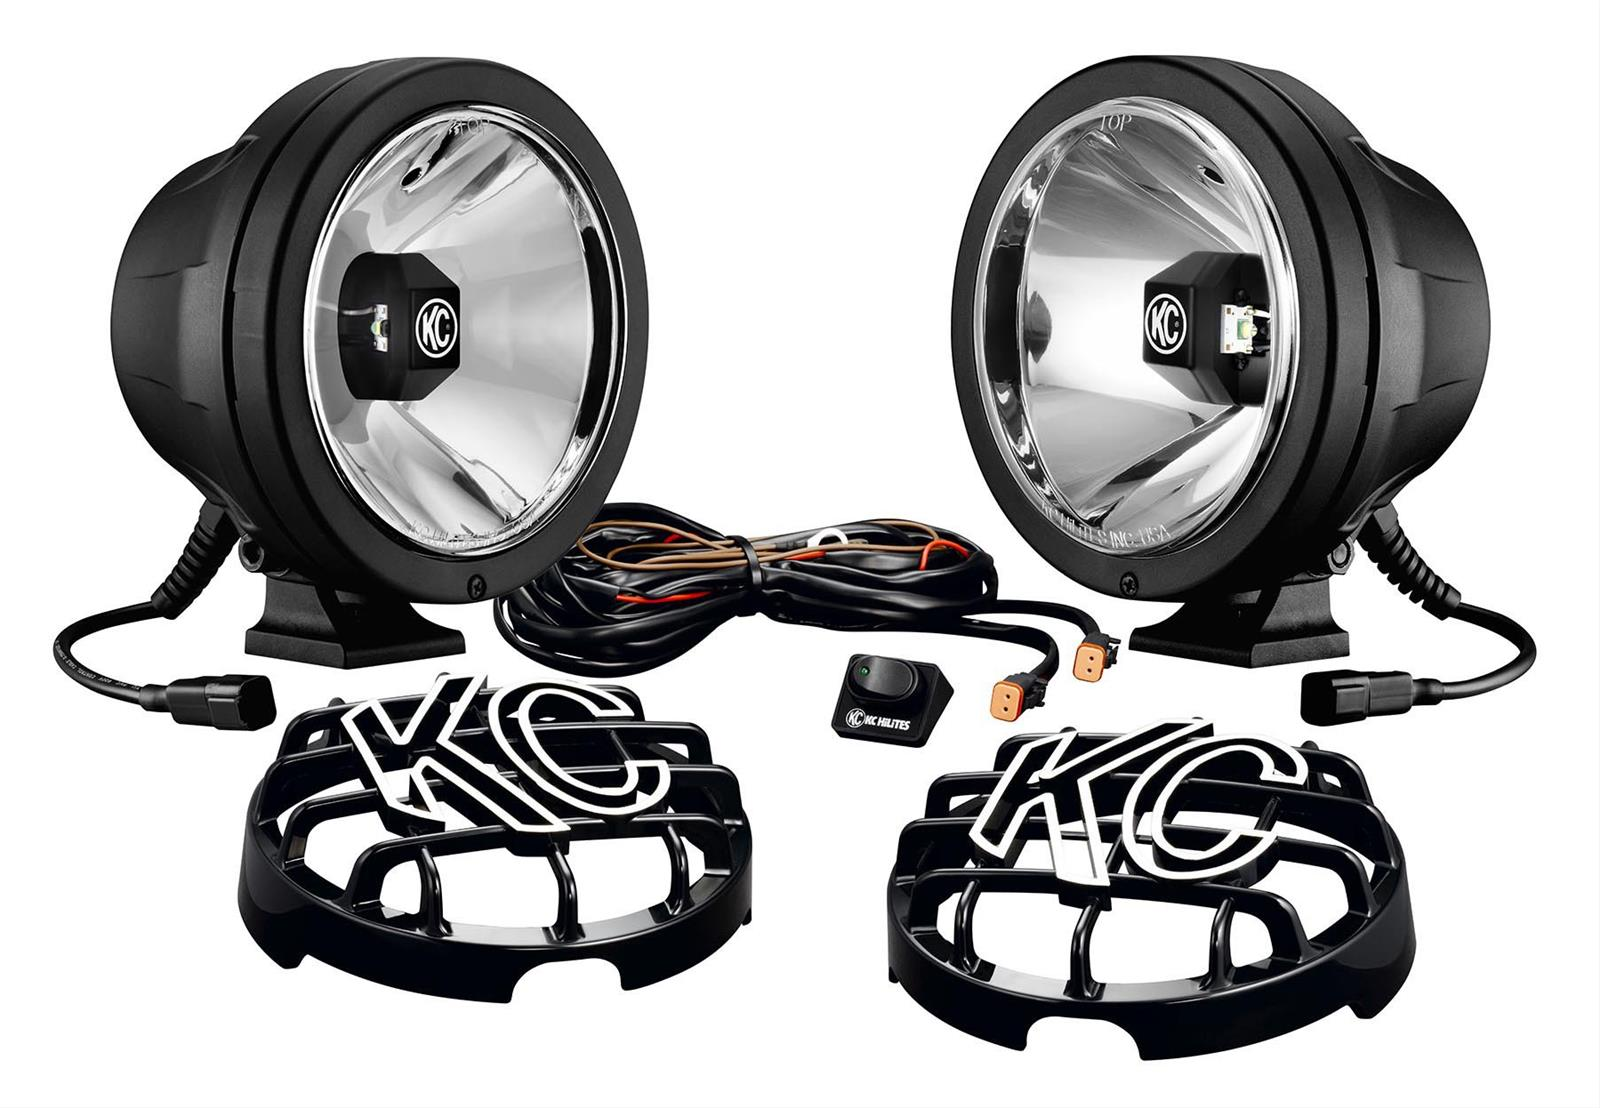 hight resolution of kc hilites pro sport gravity led driving lights 643 free shipping on orders over 99 at summit racing